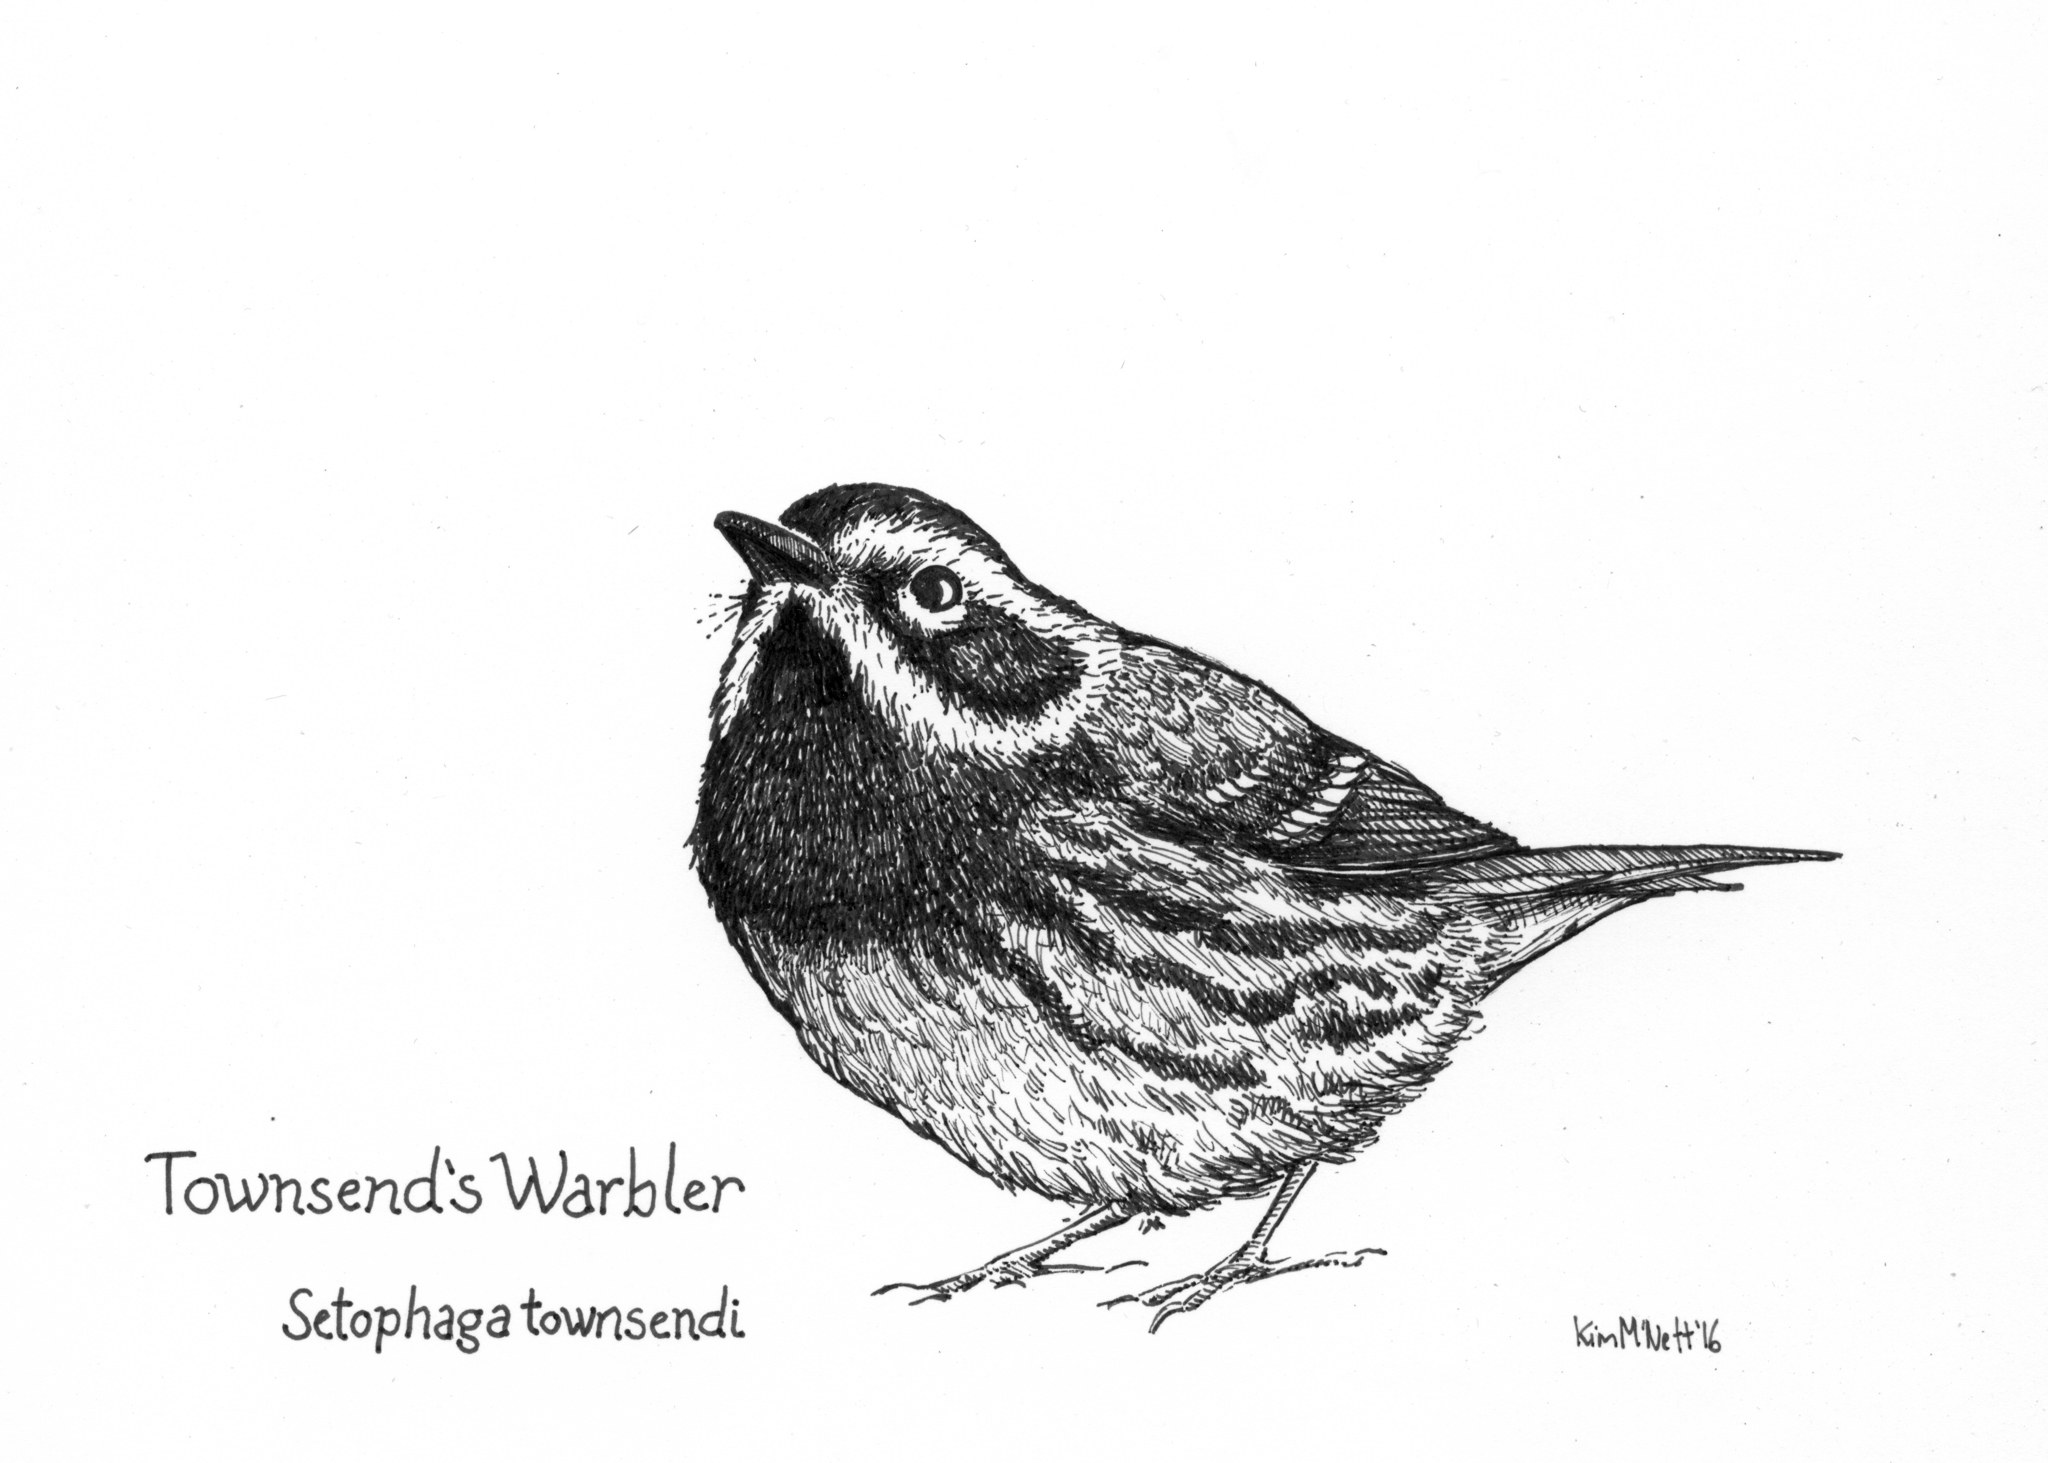 Townsend's Warbler drawing, warbler drawing, illustration, bird drawing